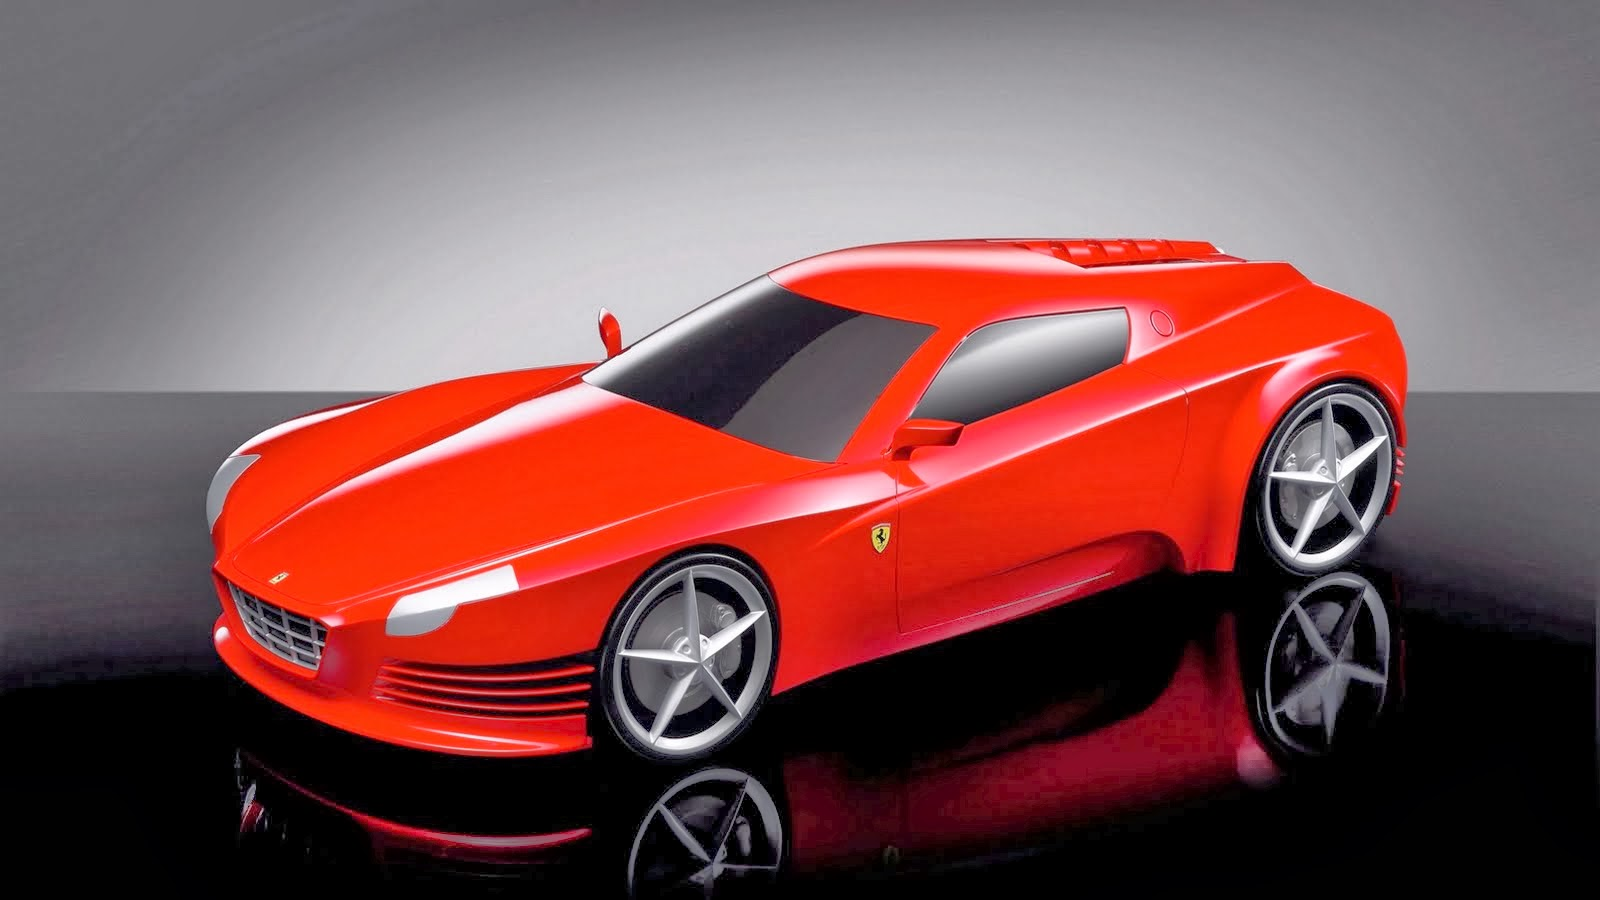 Cars Wallpapers: HD Wallpapers Mela: Beautiful Cars Wallpapers 2014